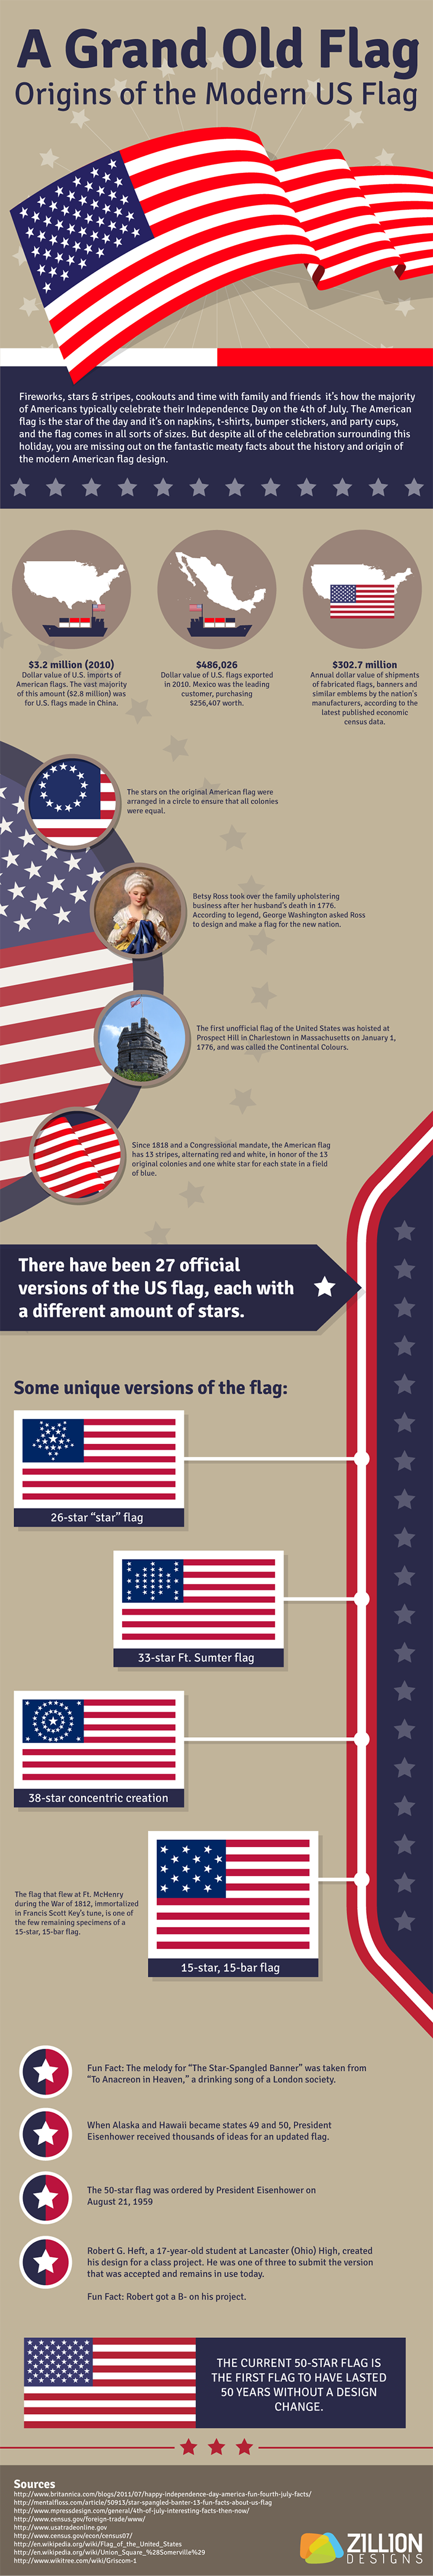 US-Flag-Origins-and-history